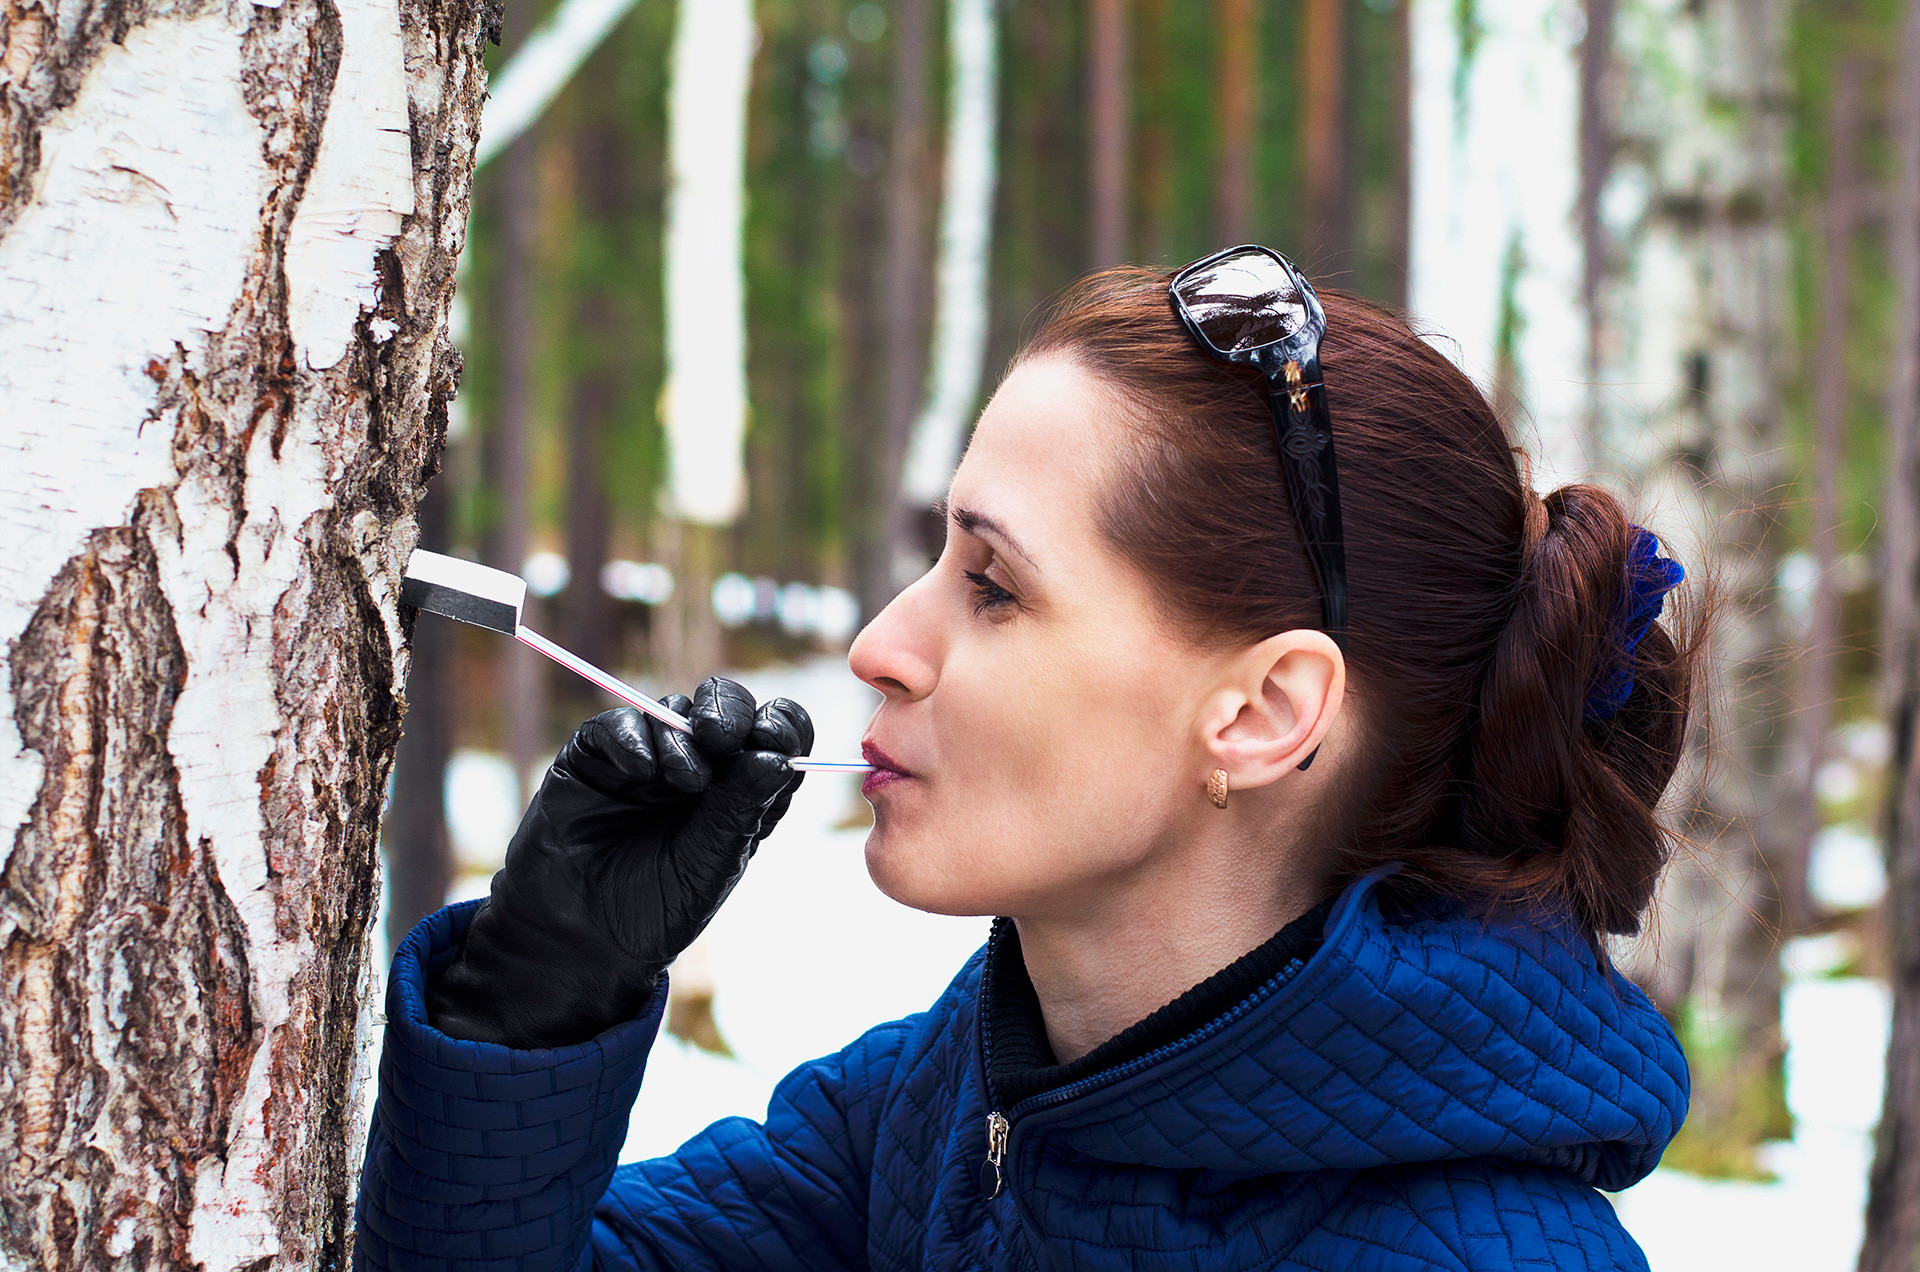 Have you ever tried birch sap?